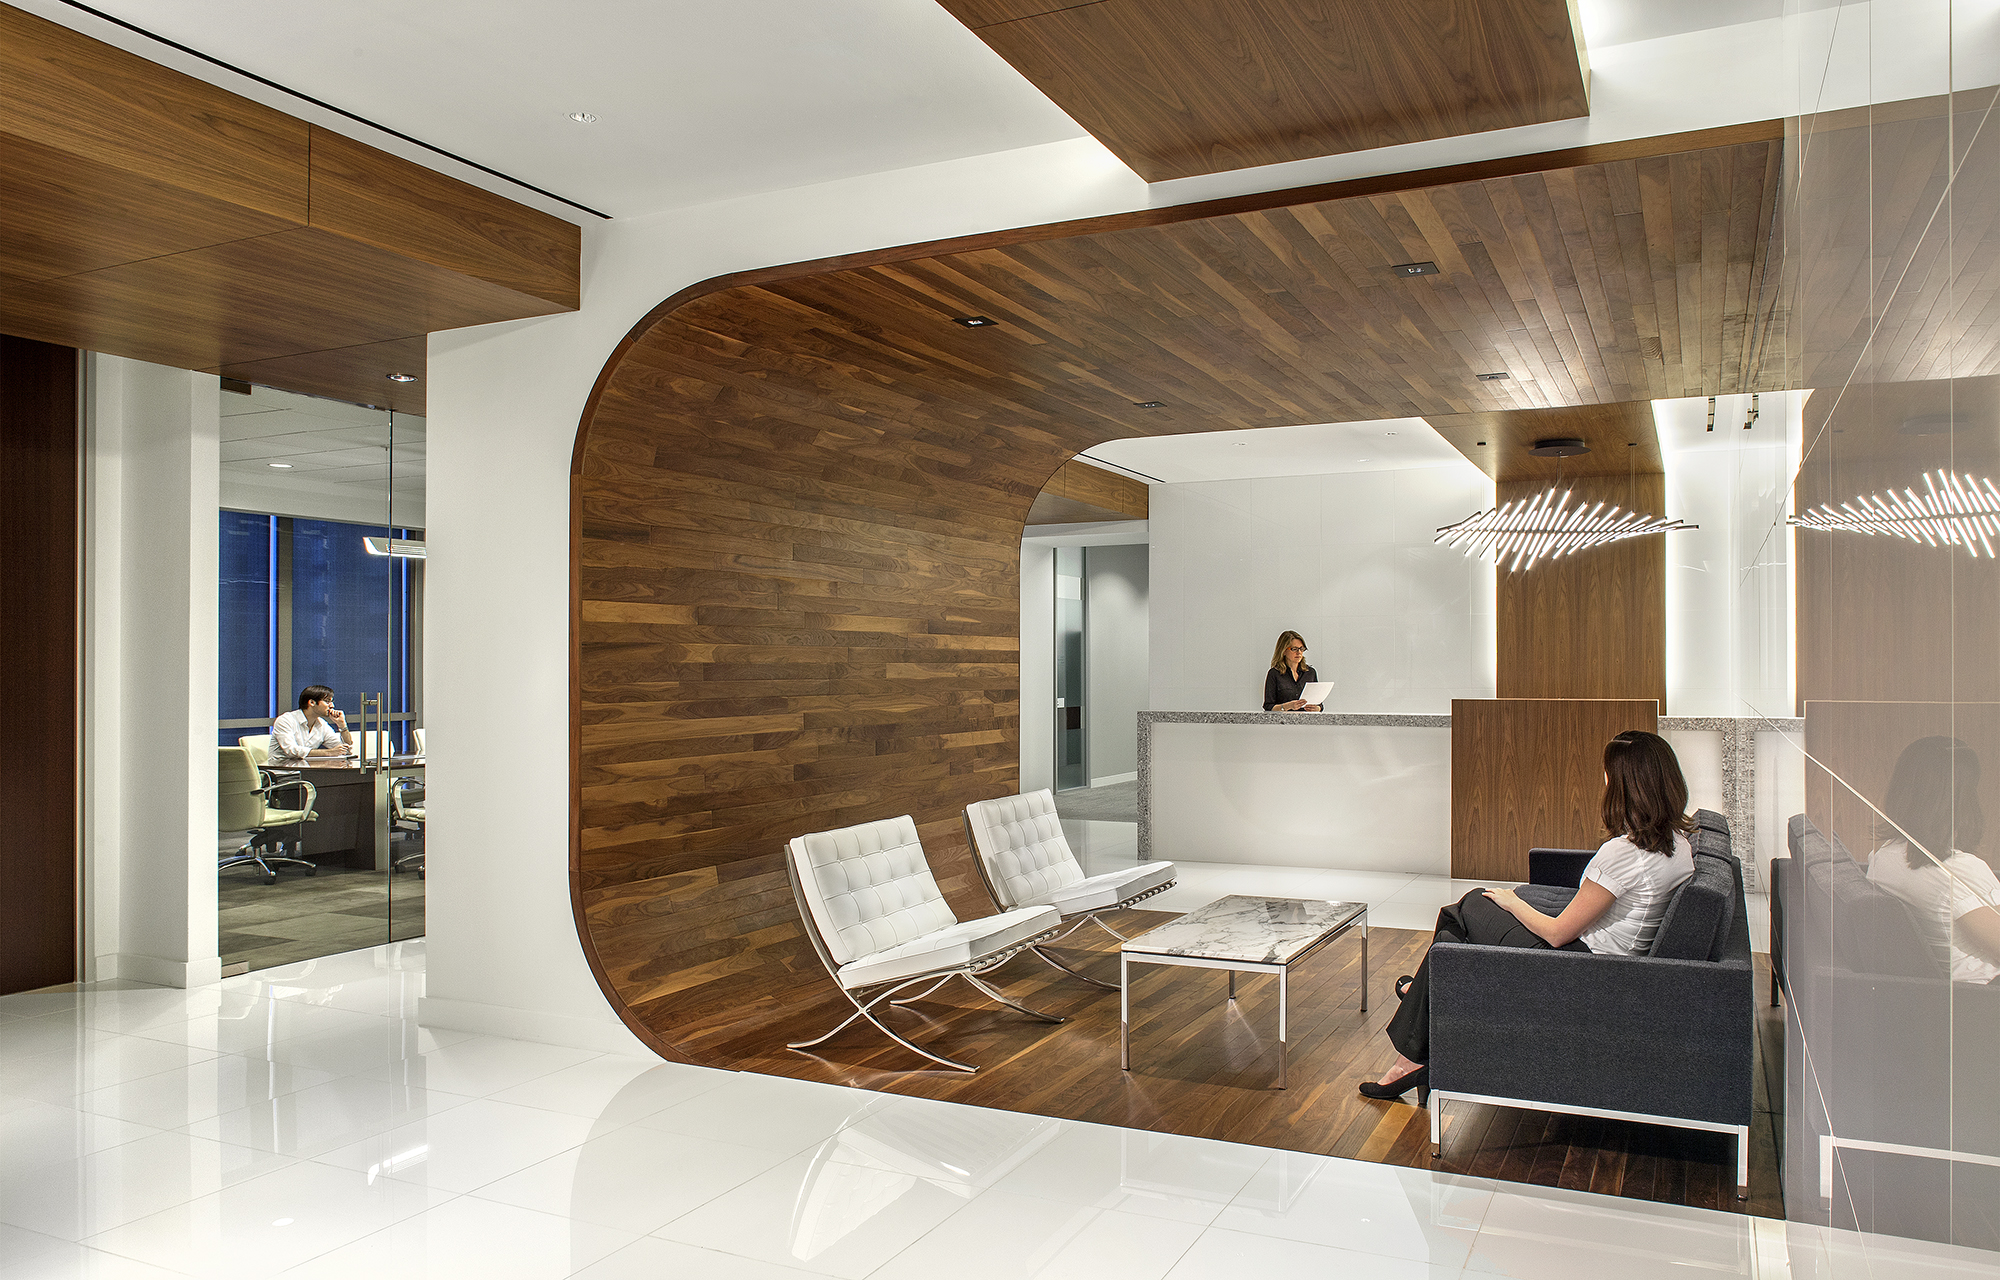 CALDWELL CASSIDY CURRY DALLAS LAW OFFICE DESIGNED BY IA INTERIOR ARCHITECTS